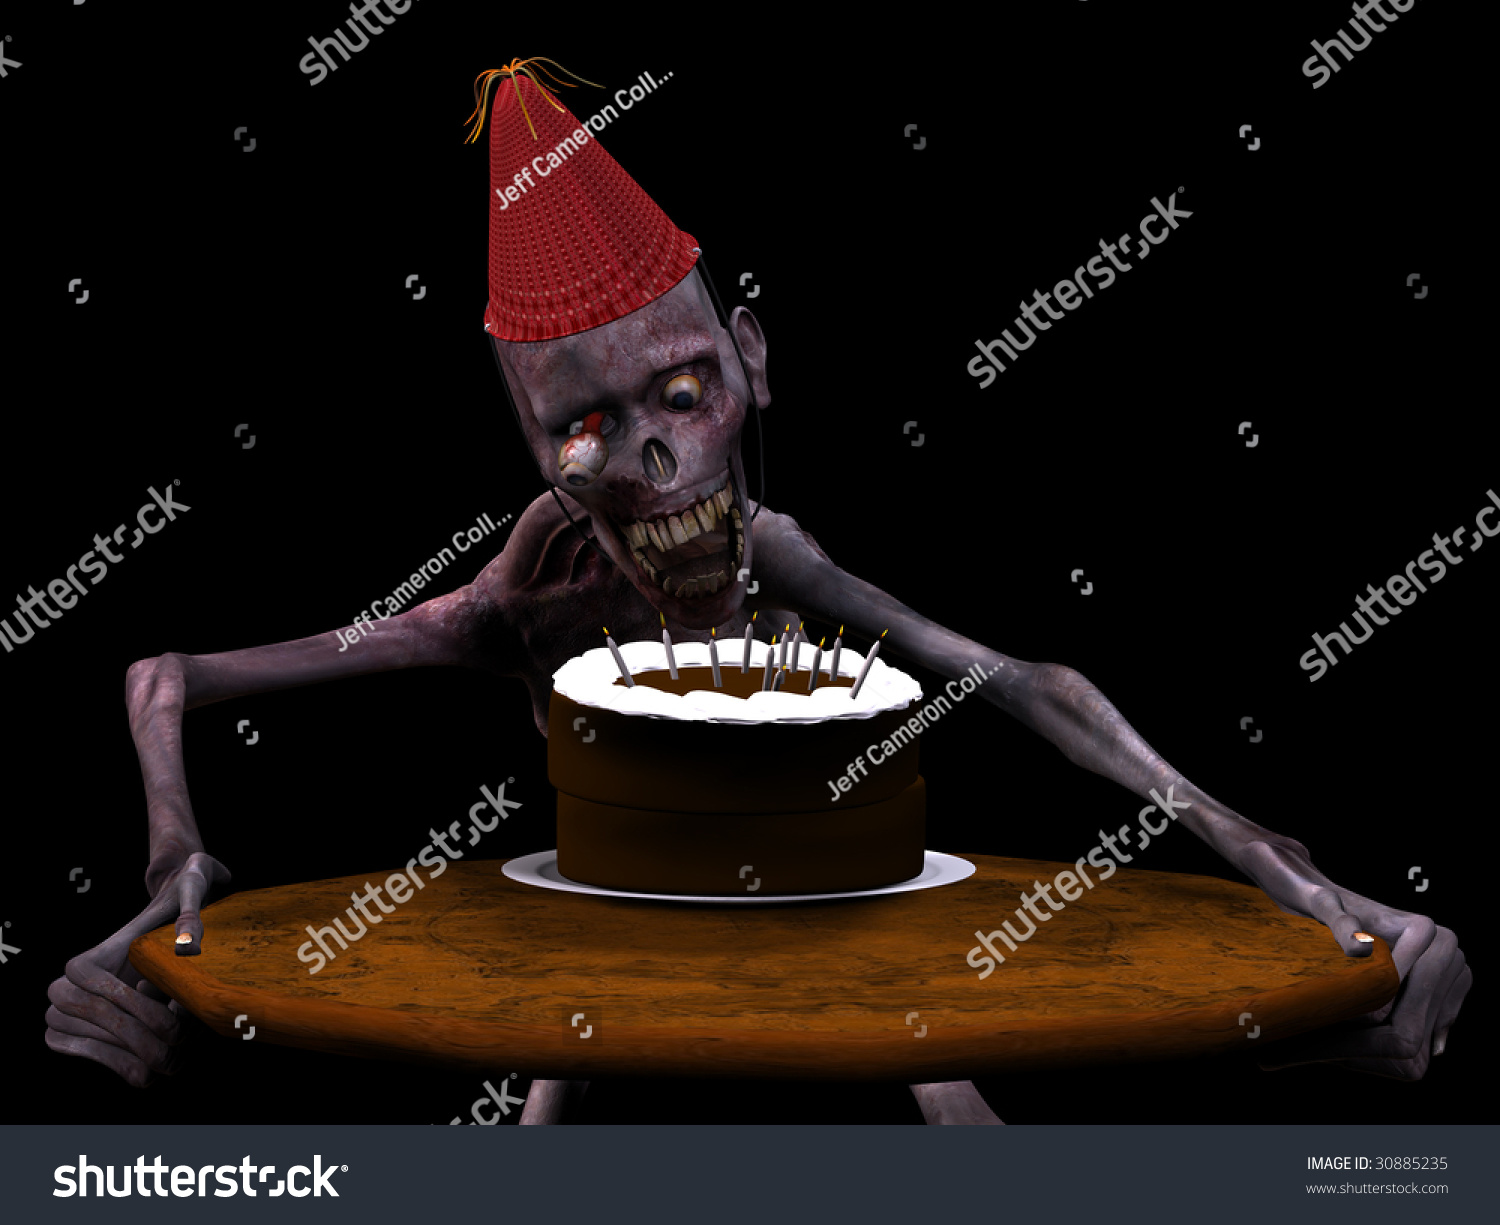 Undead Zombie Blowing Out Candles On A Birthday Cake Isolated Black Background